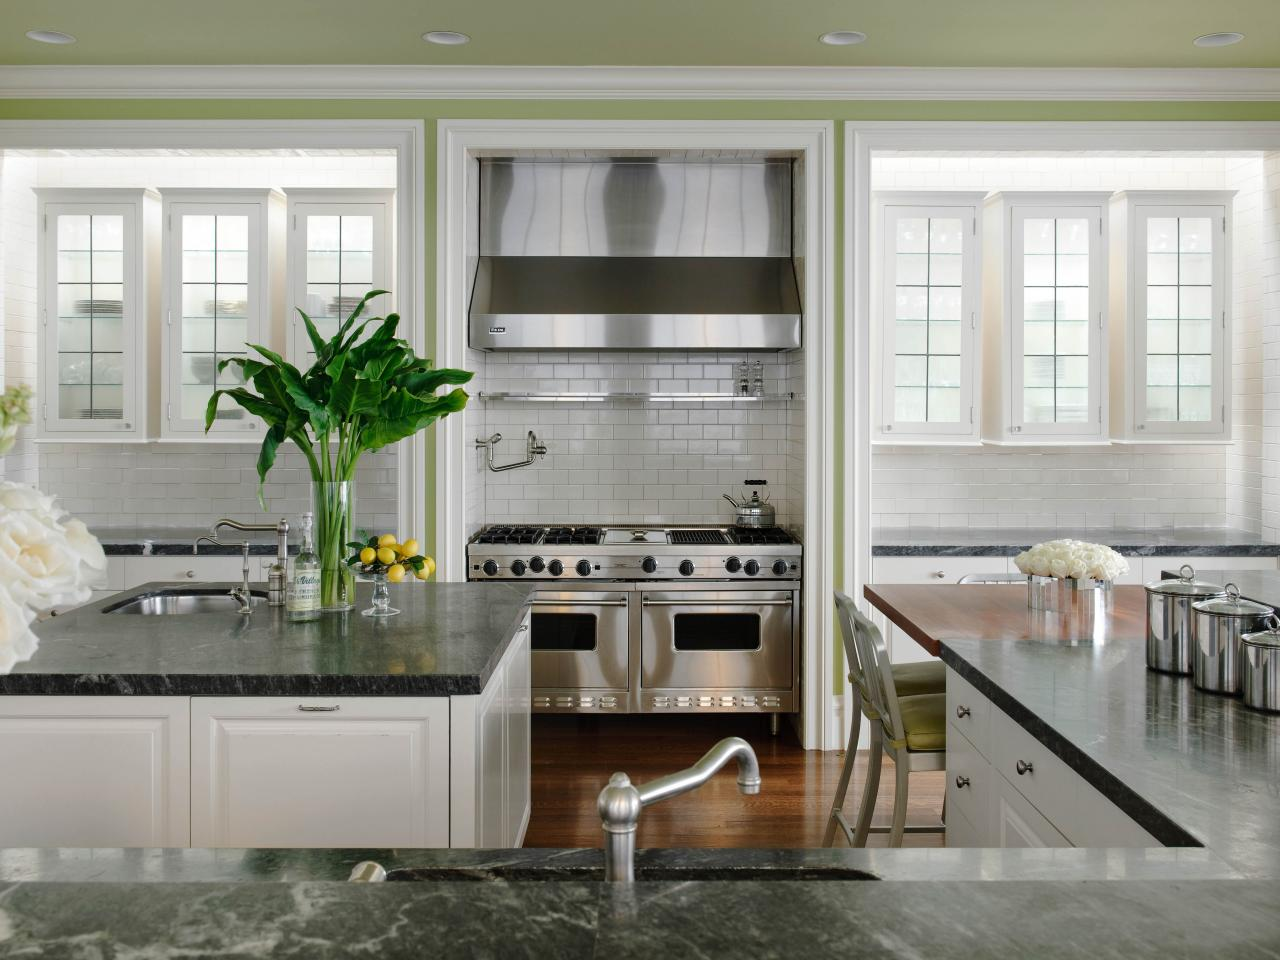 Gray And White Kitchen Designs so many stunning gray and white kitchens including marble countertops and backsplashes subway tiles White Kitchen Countertops